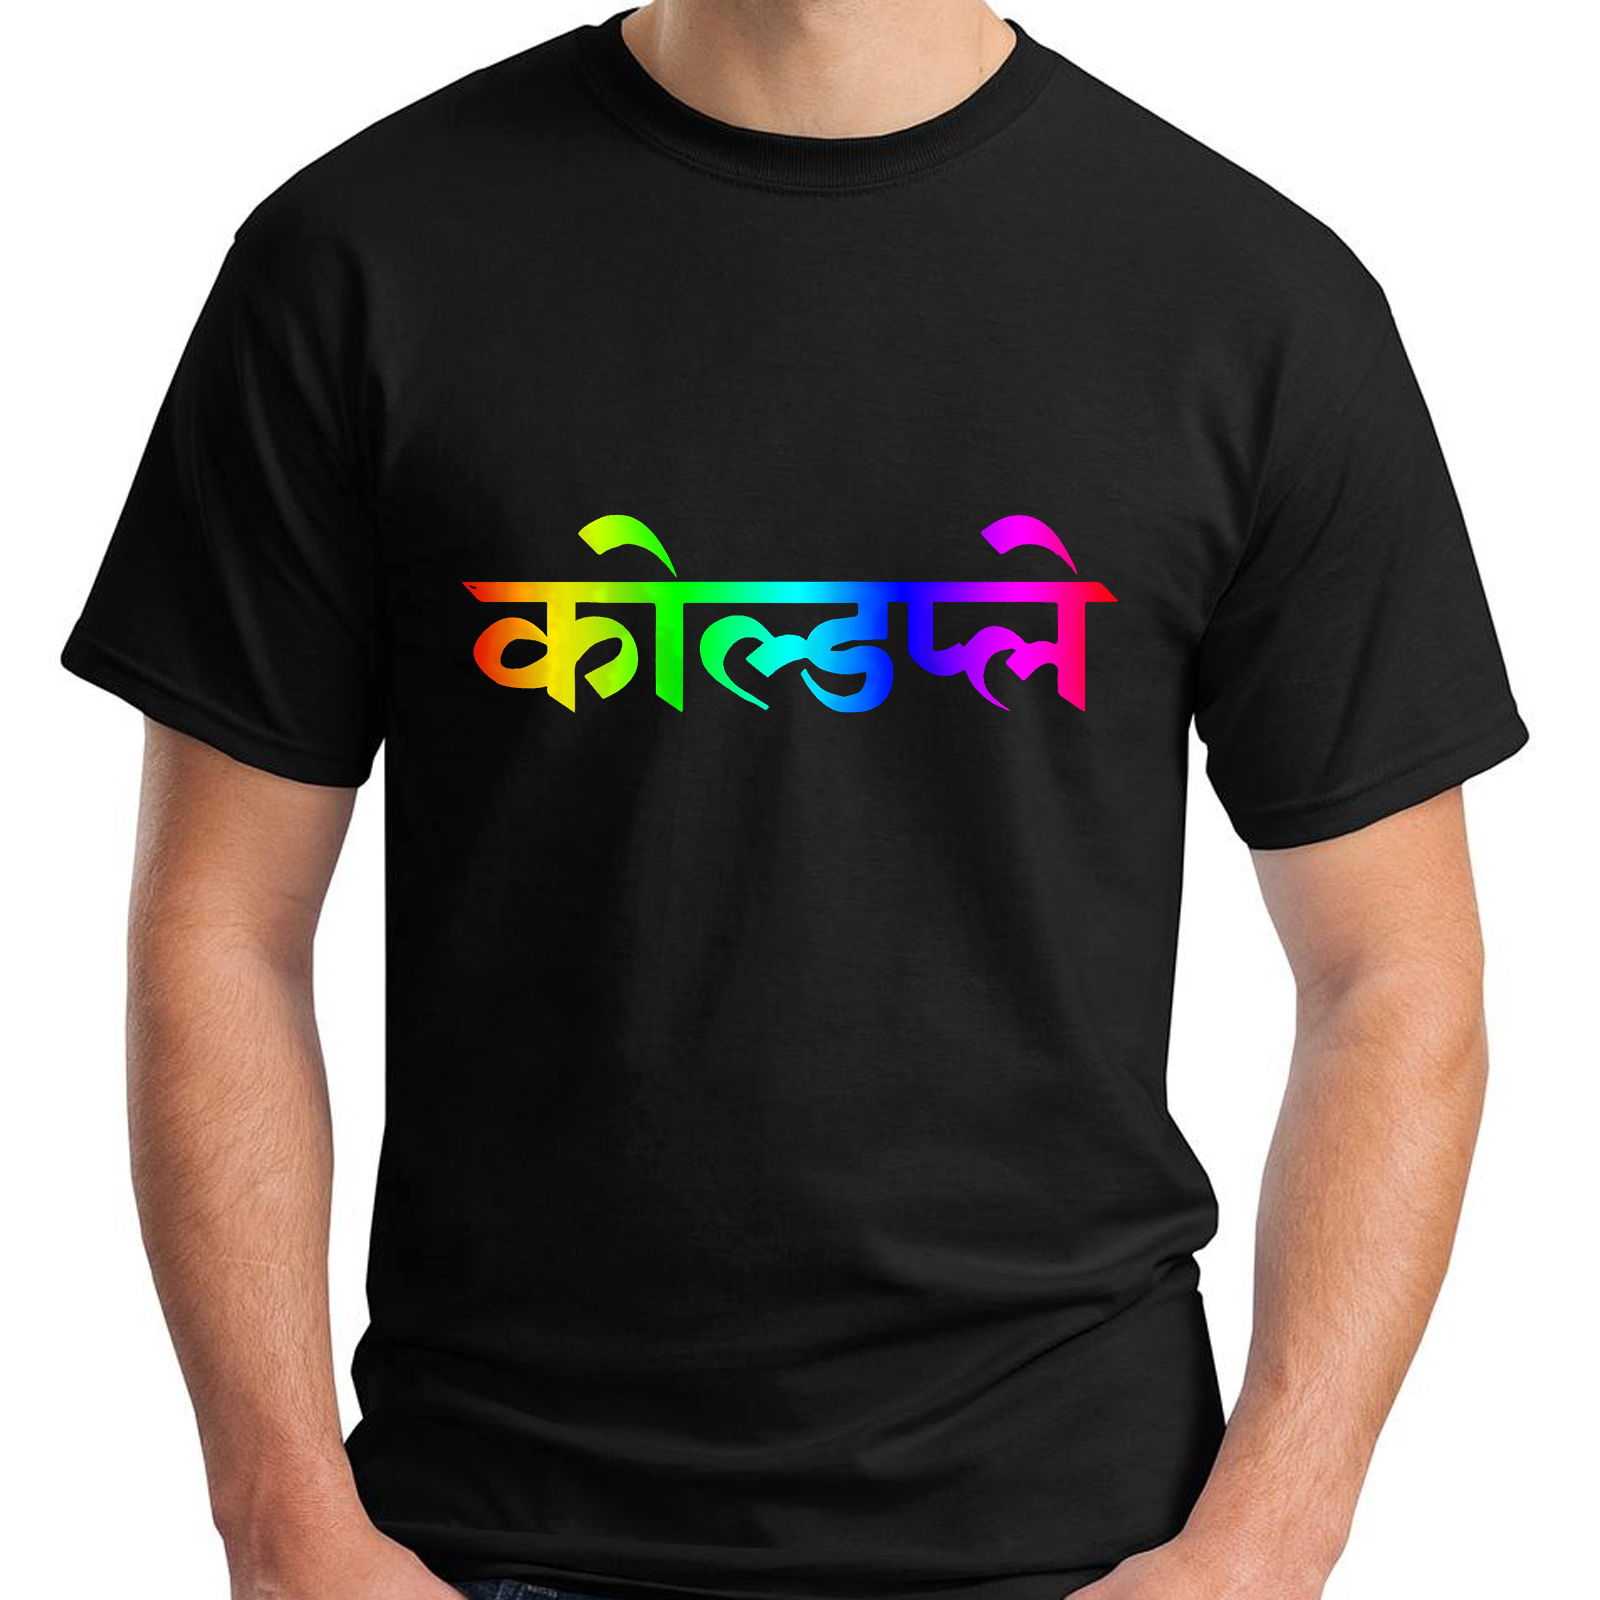 Black t shirt online design - Print Tee Shirts Online New Coldplay Hindi Logo Short Sleeve Black Mens New Man Design T